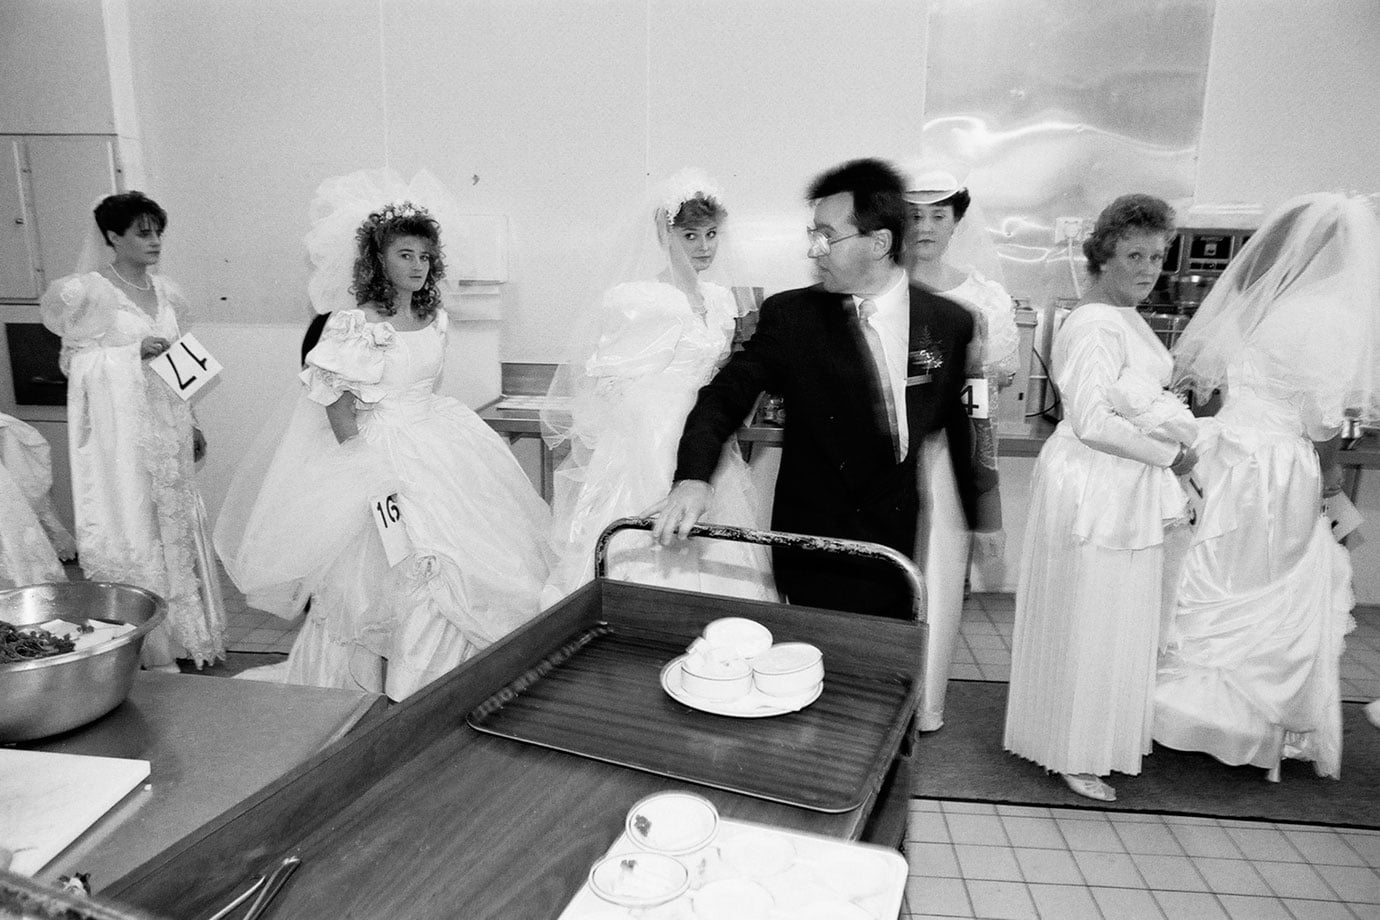 Bride Competition, Christchurch, 1991, Bruce Foster NZ